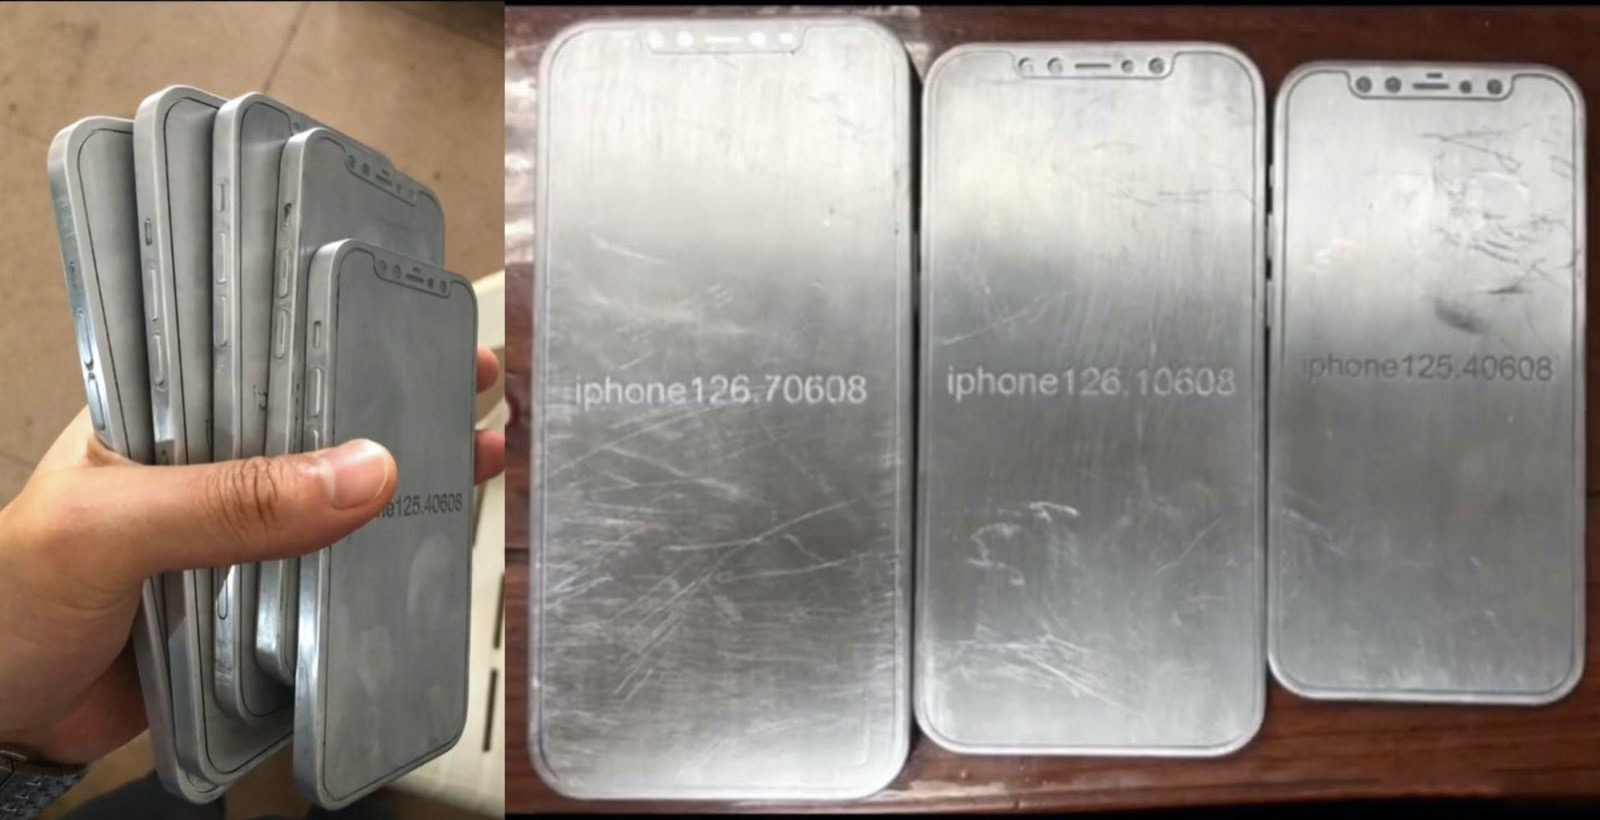 Iphone 12 mockups emerge online